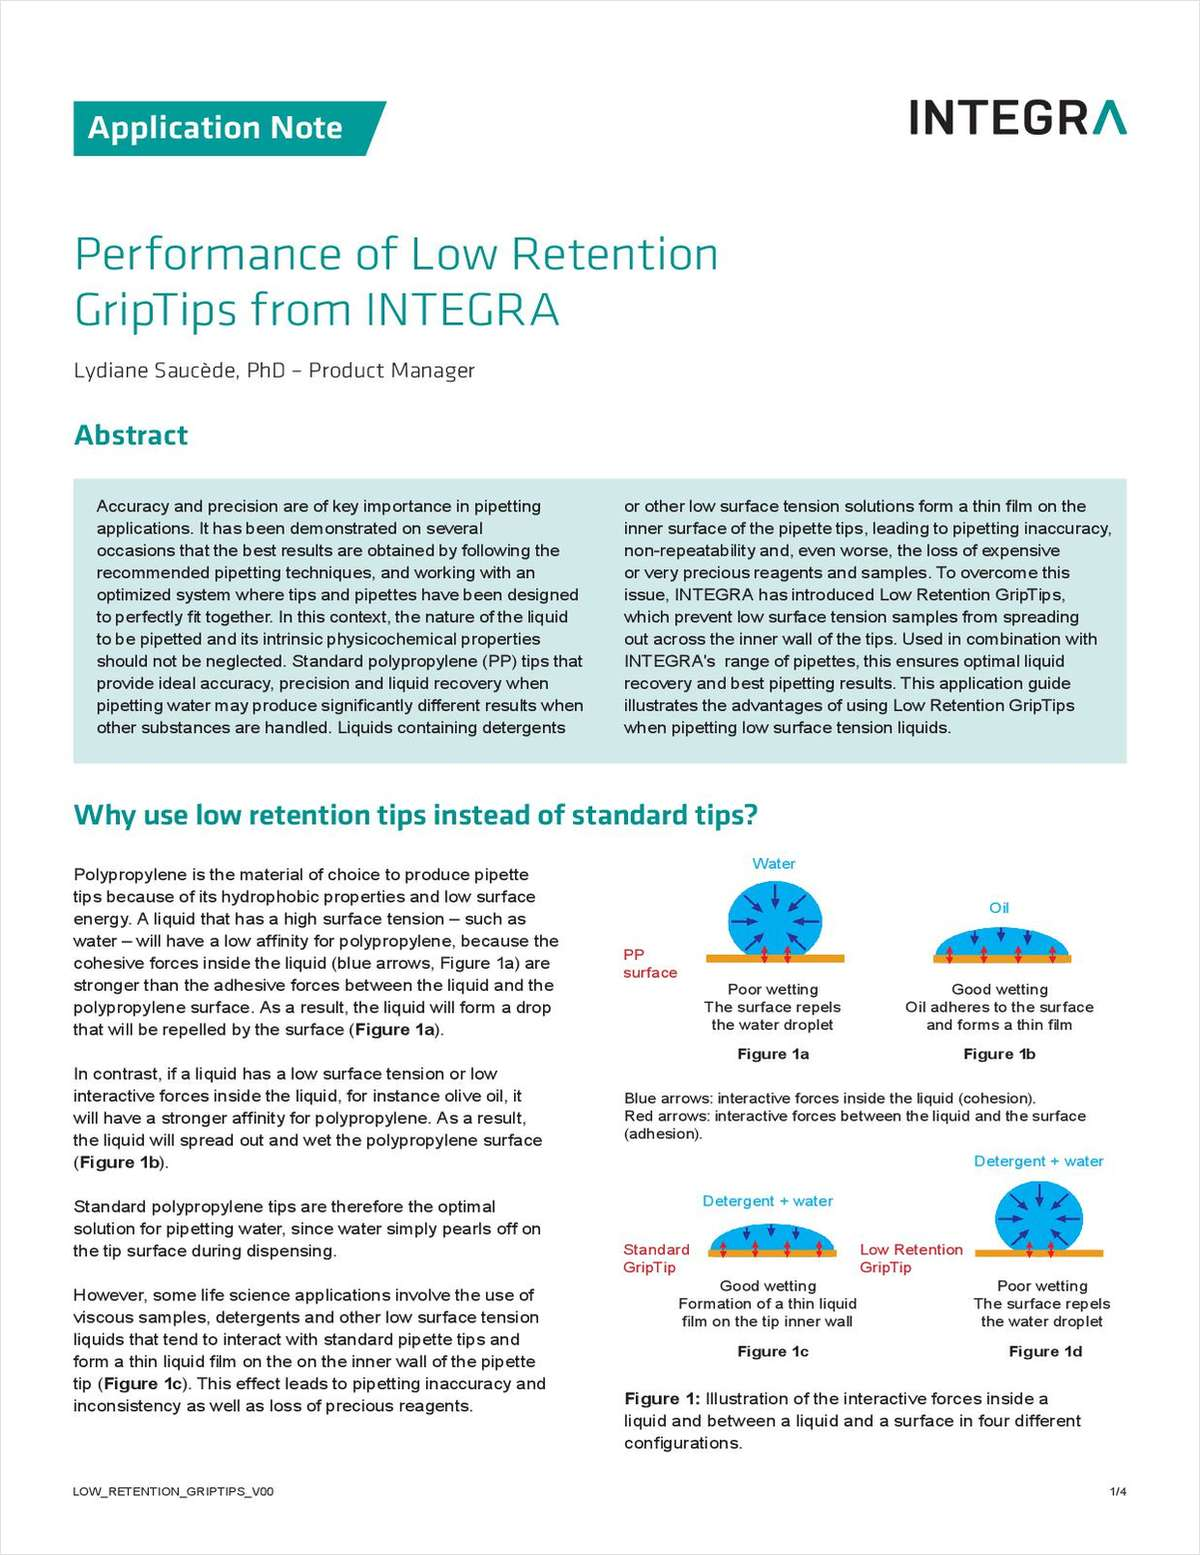 Performance of Low Retention GripTips from INTEGRA